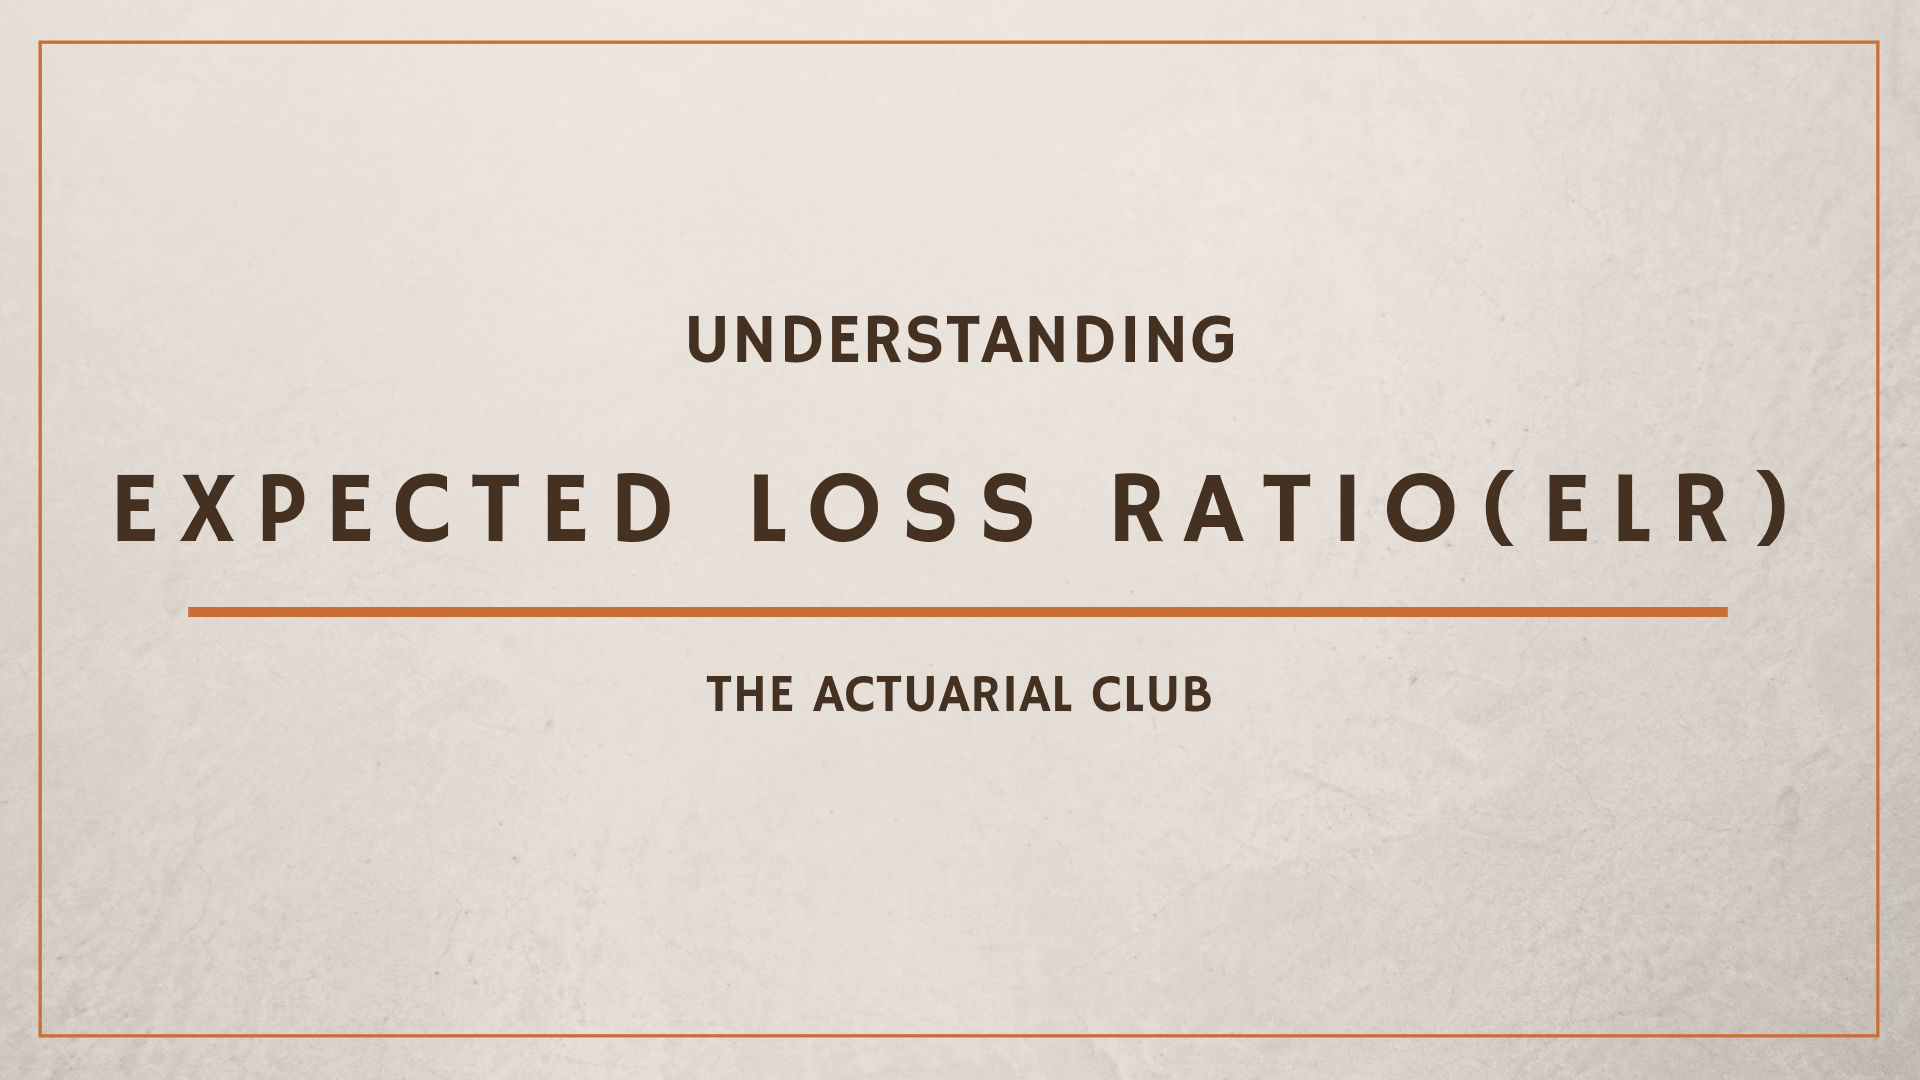 Expected Loss Ratio ELR Method TAC